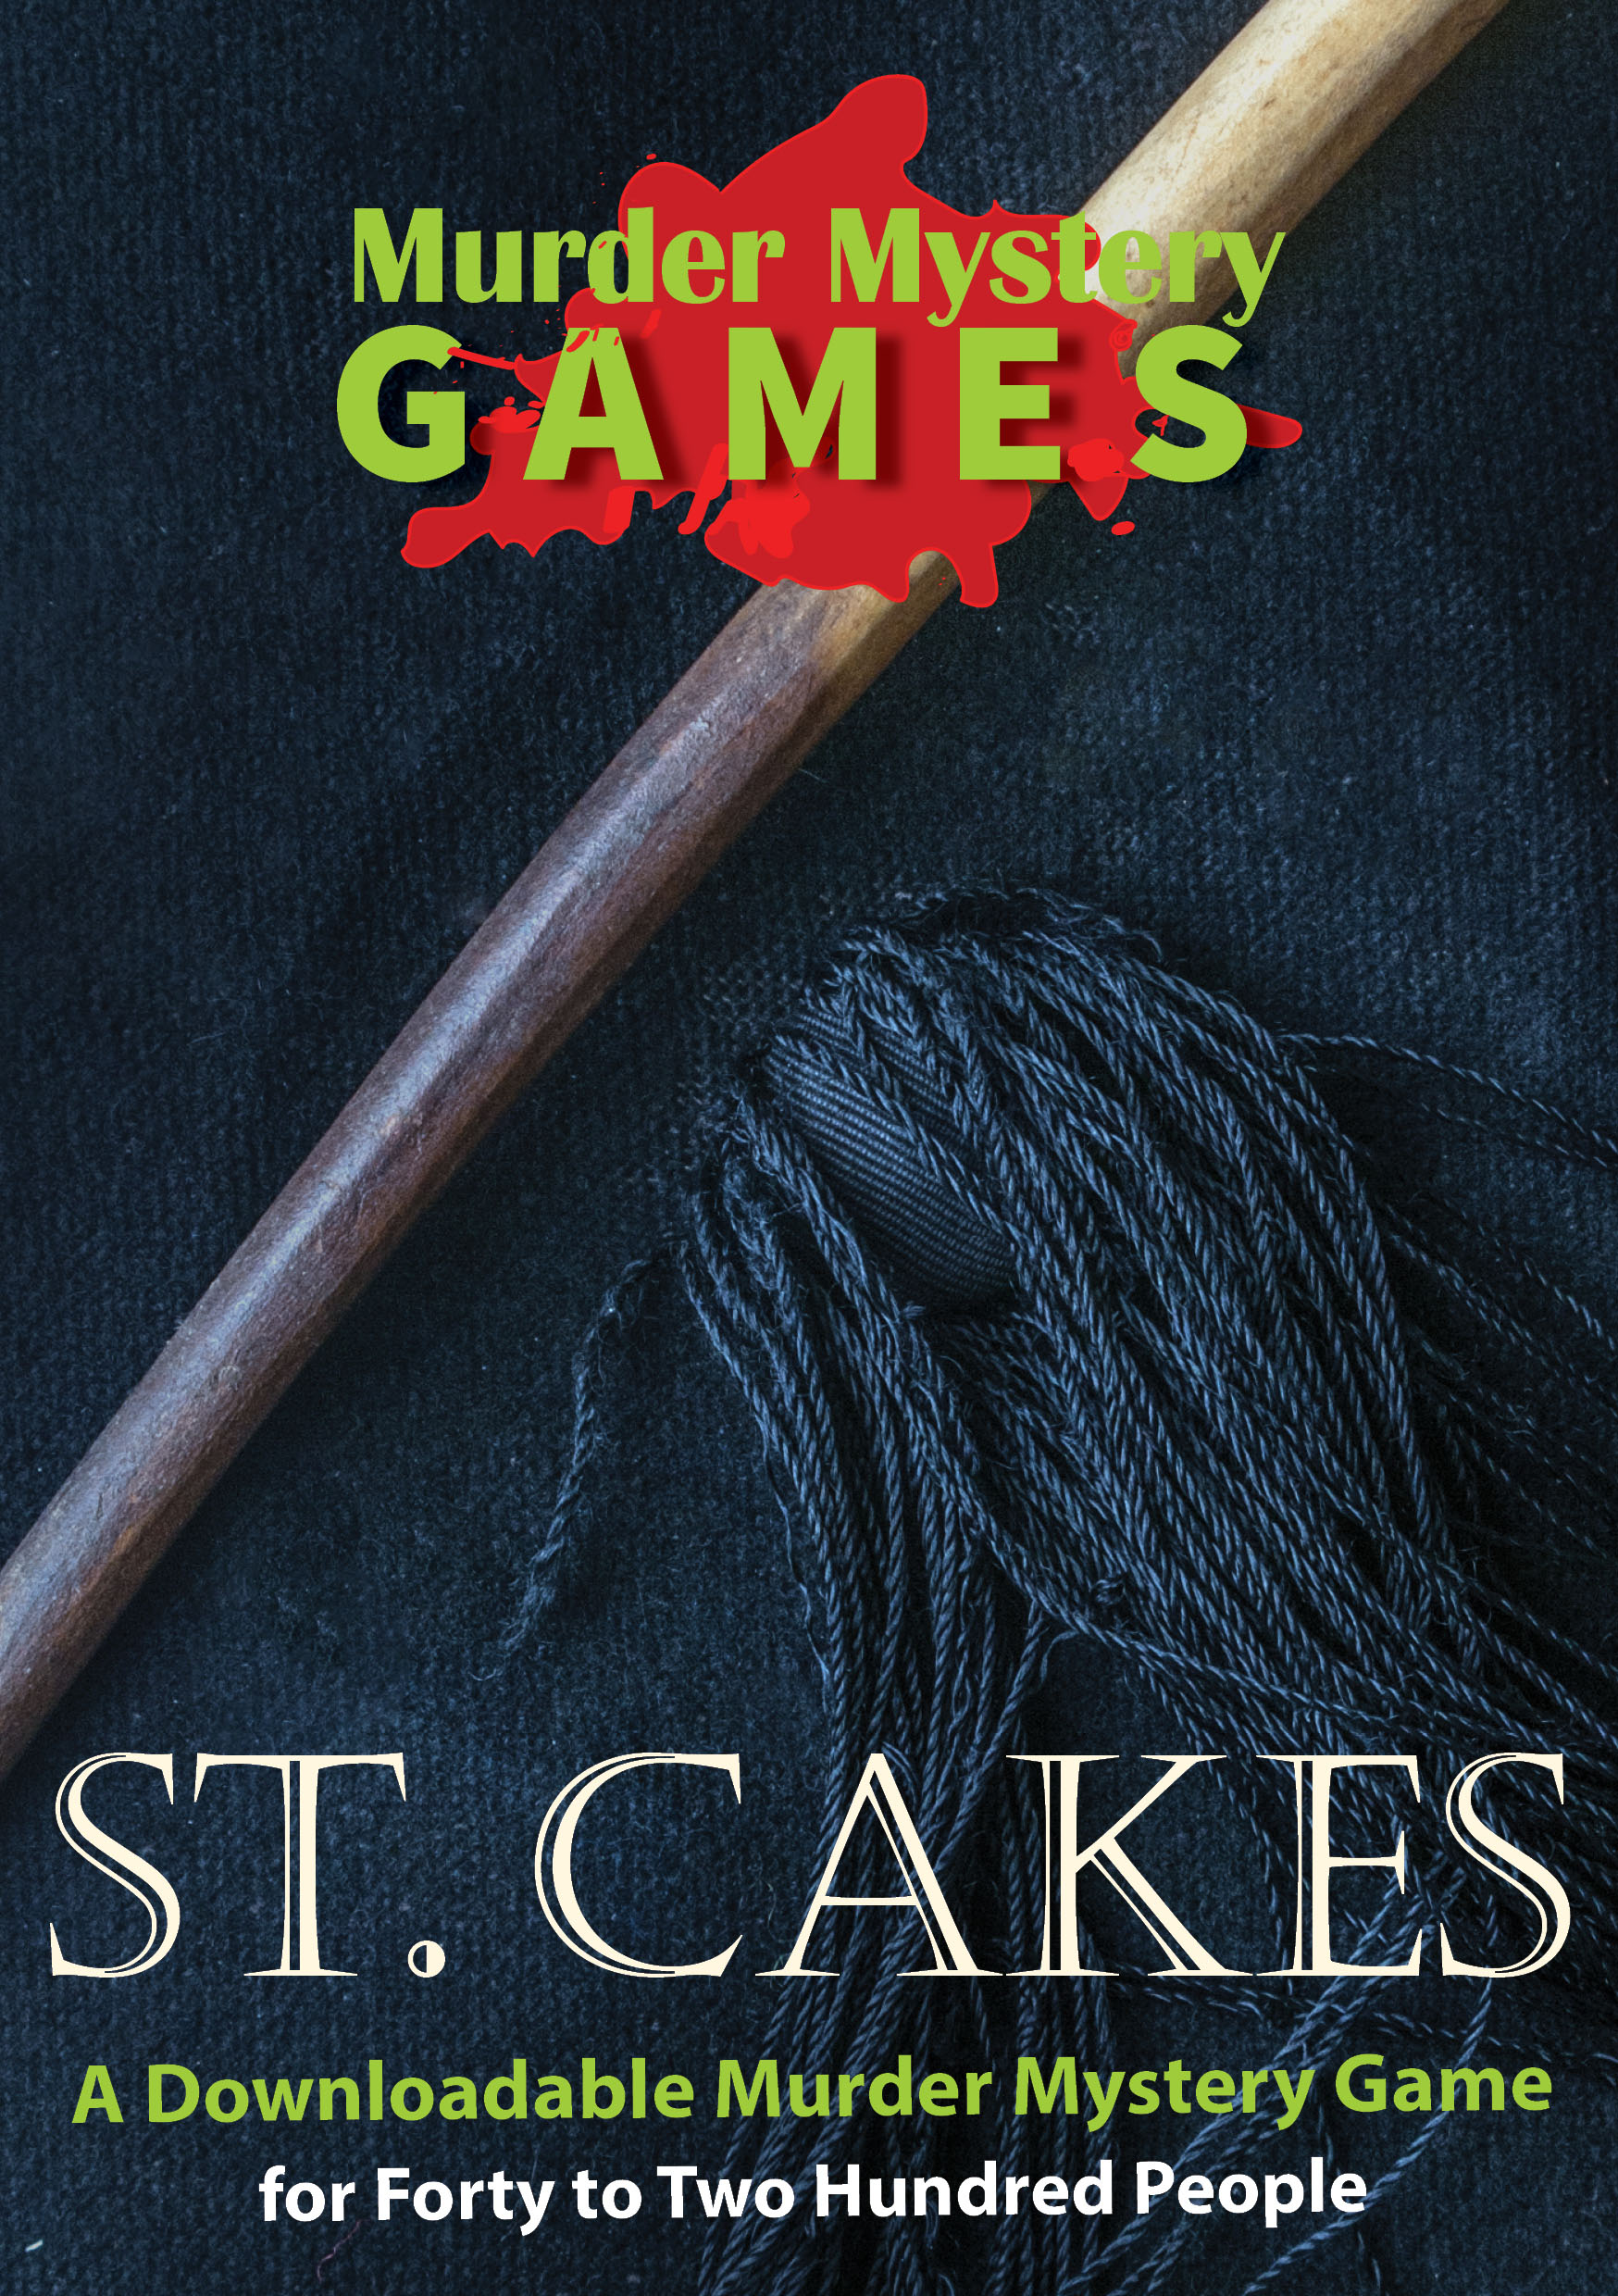 St. Cakes - A Downloadable Murder Mystery Game Excellent for Charities and Fund Raising